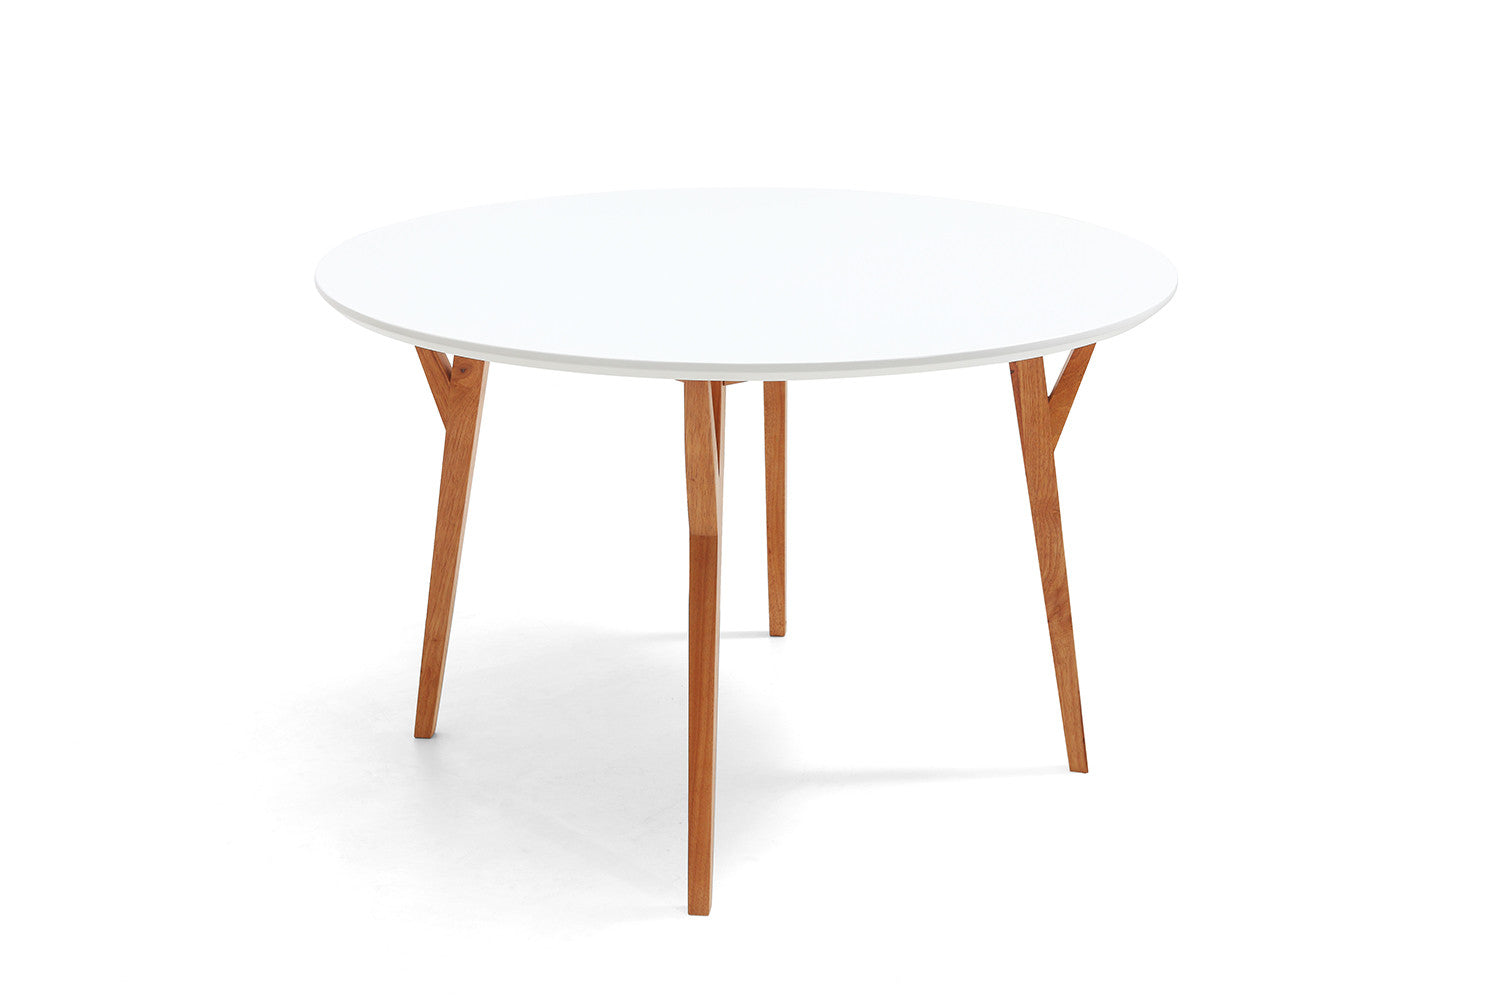 Table de salle à manger ronde design scandinave Moesa  Dewarens -> Table Ronde Scandinave